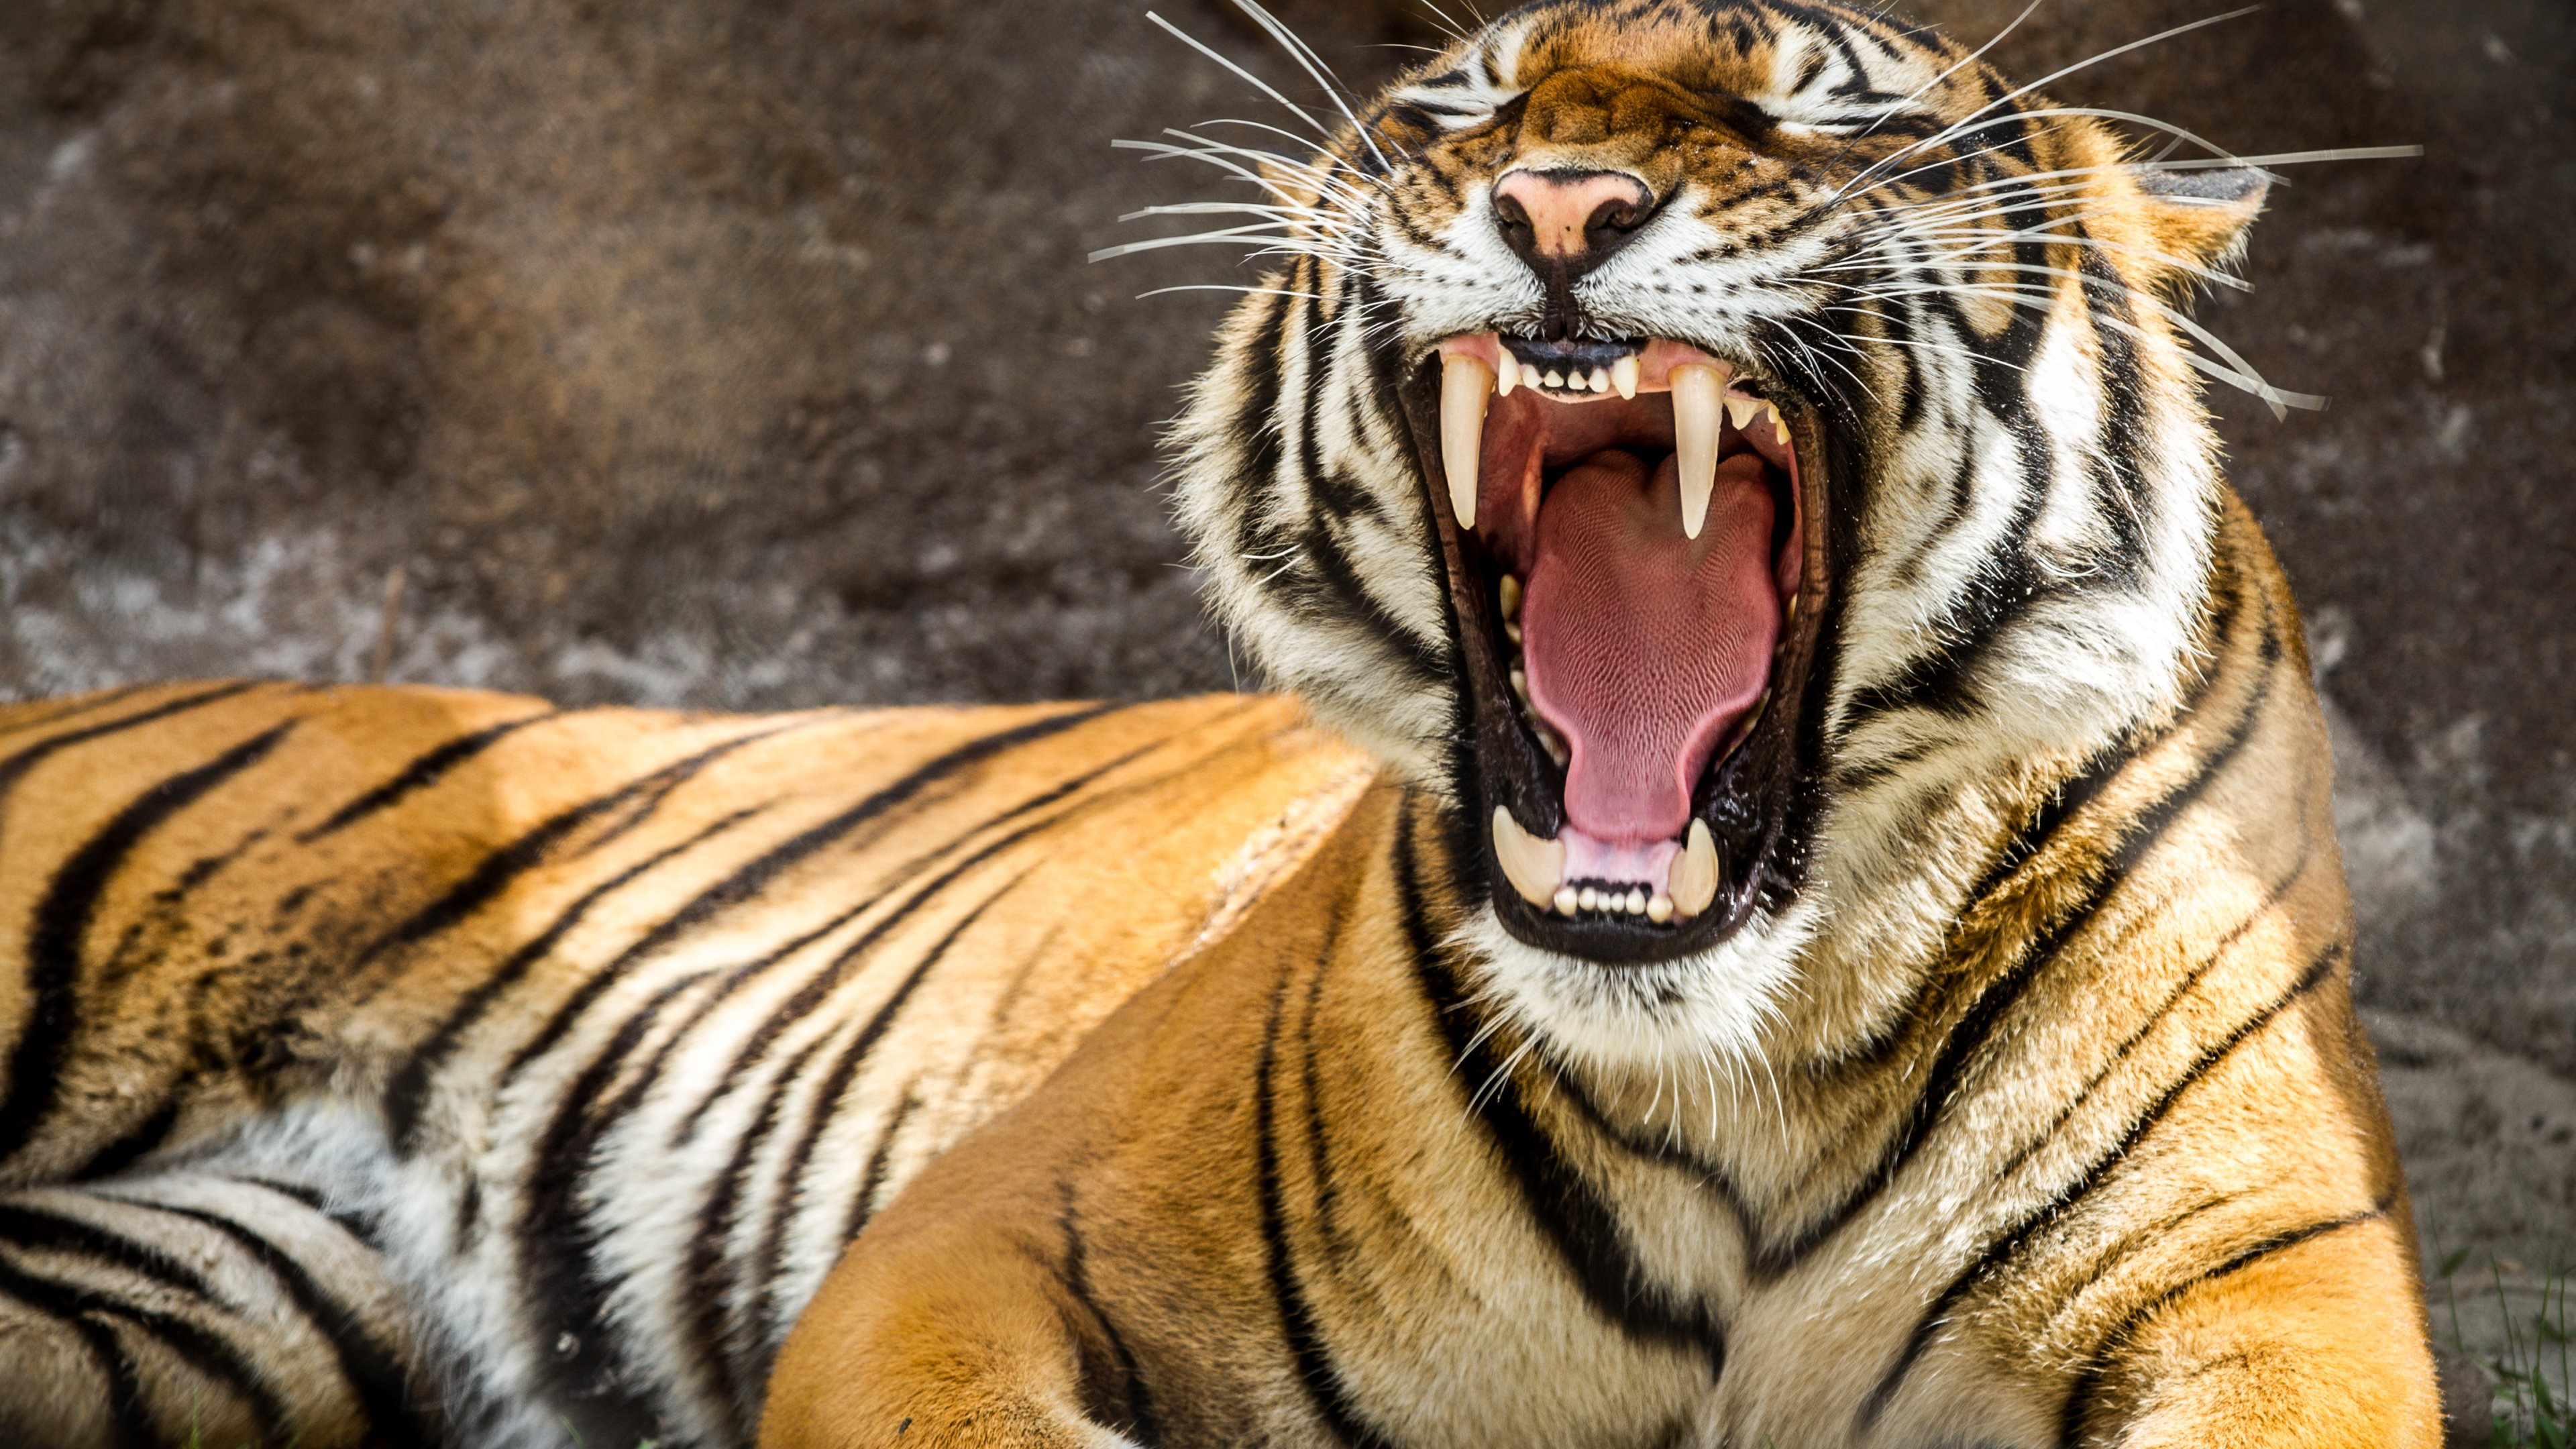 Tiger 4k ultra hd wallpaper background image 3840x2160 id 549216 wallpaper abyss - Tiger hd wallpaper for pc ...